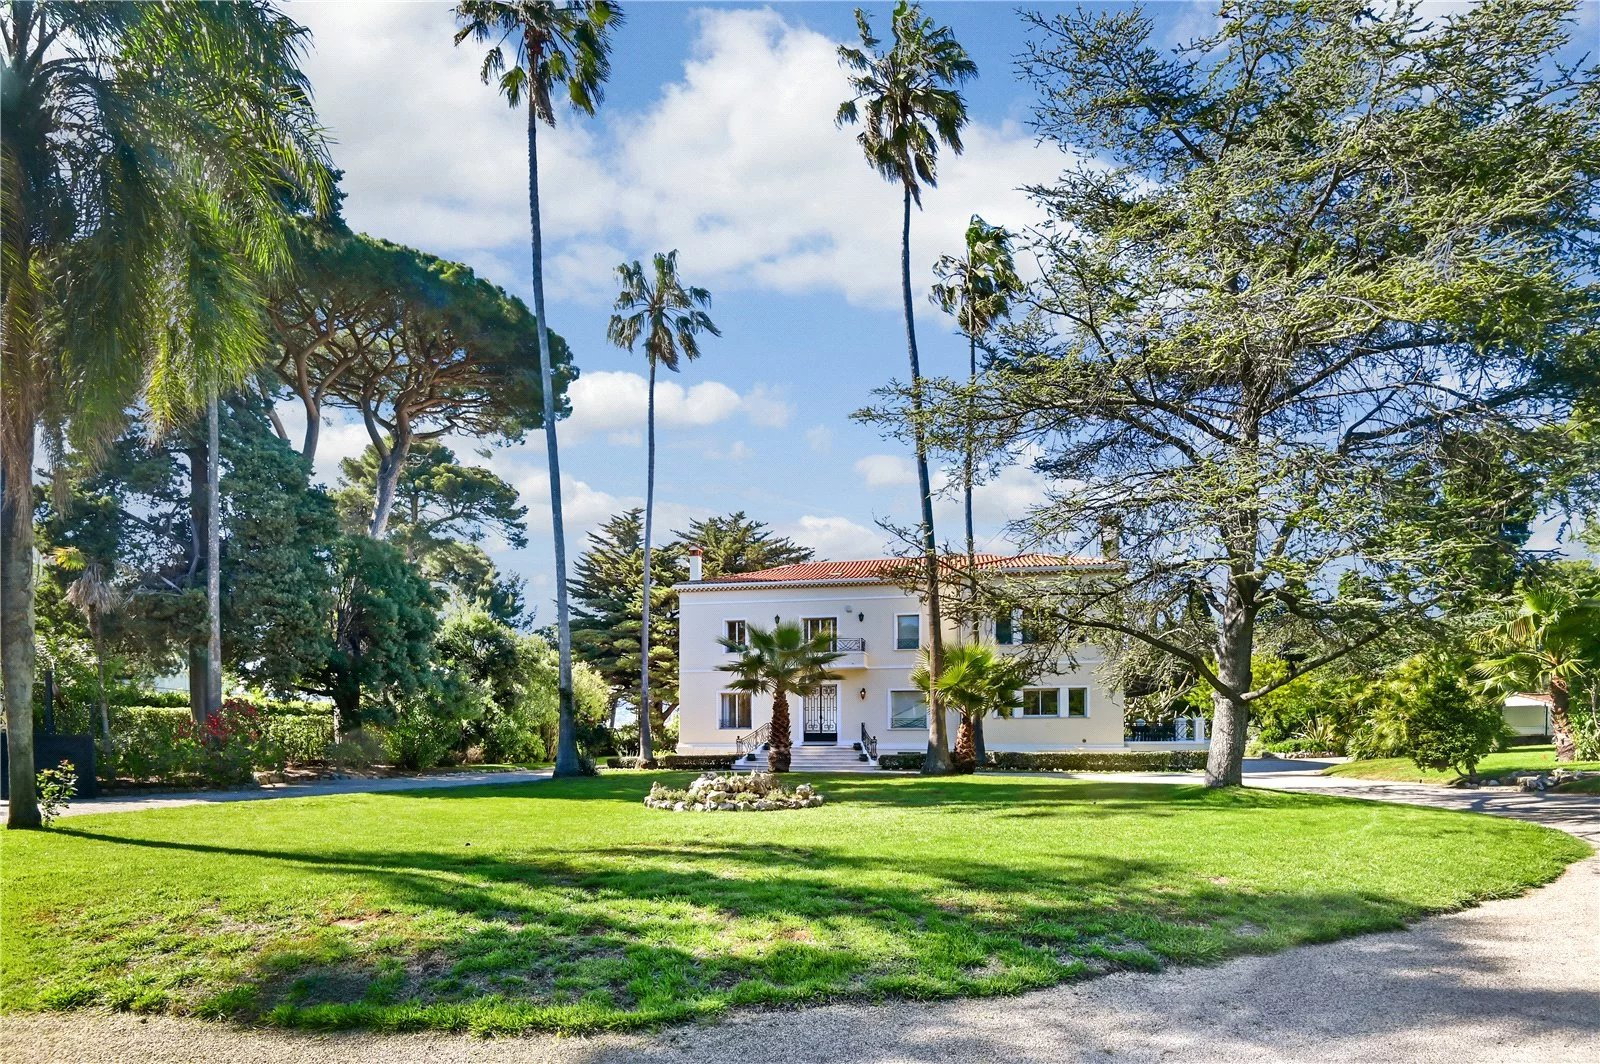 Buying Villa Cap d'Antibes Outstanding waterfront property, set in landscaped grounds with heated pool, pool house, tennis court and garage.